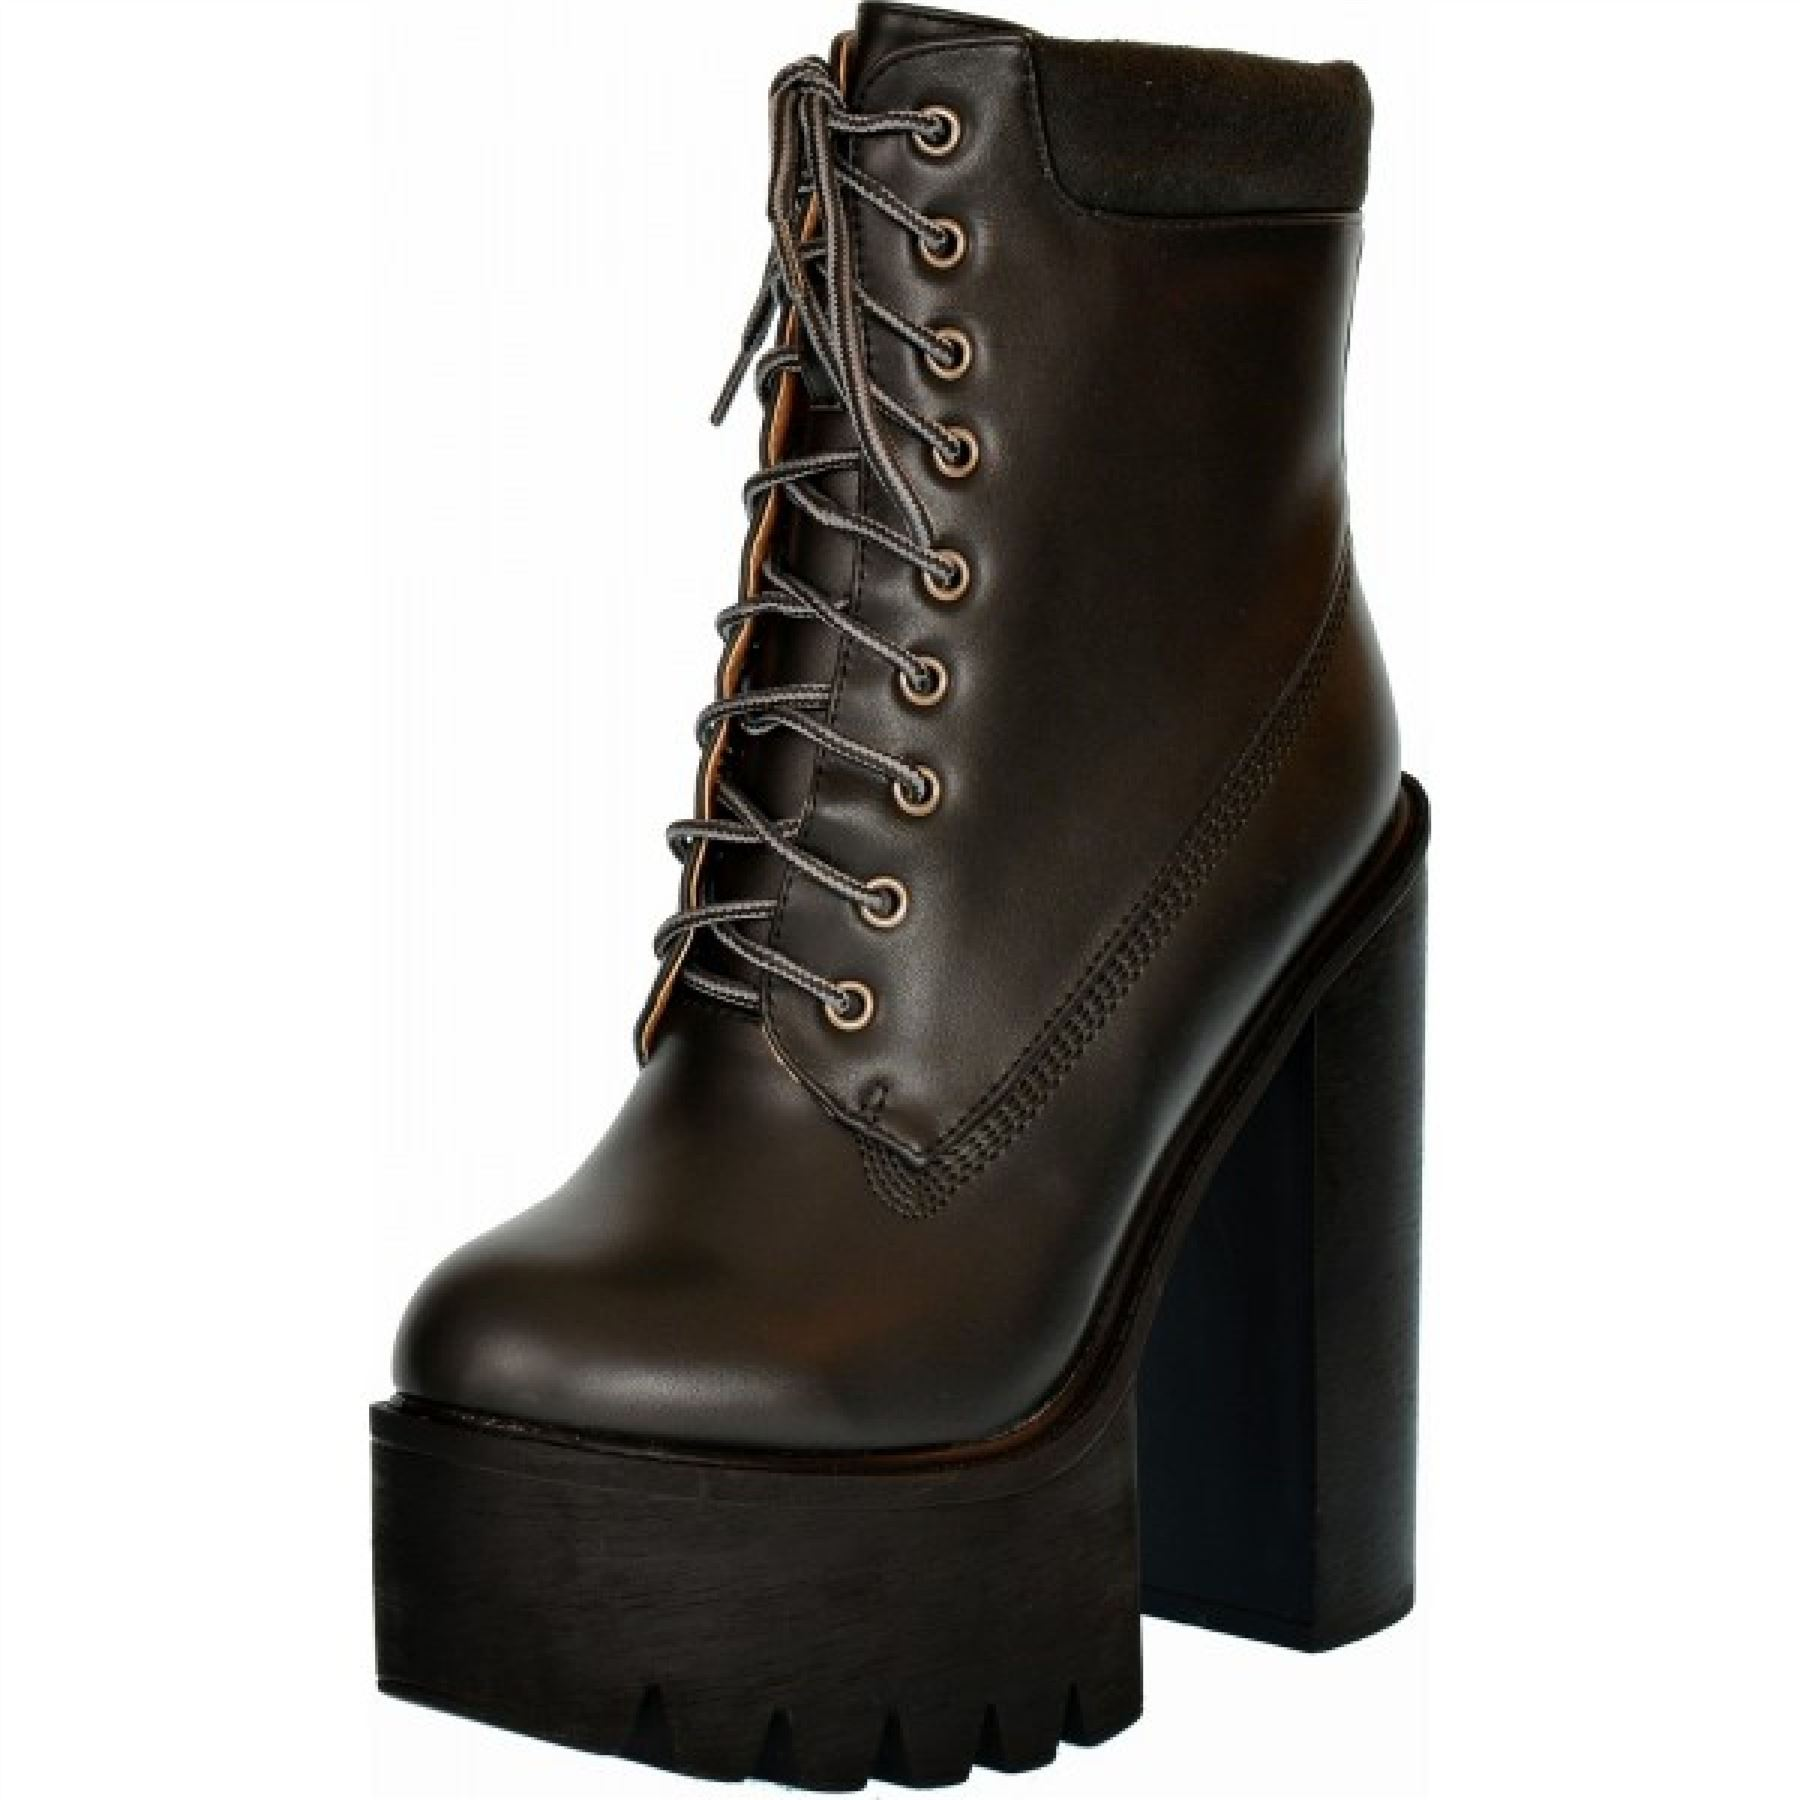 Shoespie Side Zipper Rivet Platform Stiletto Ankle Boots Reviews (13) By Phyllis Jan, I absolutely LOVED the look and fit of these boots when I got them. These boots are so comfortable and exactly what I was looking for.